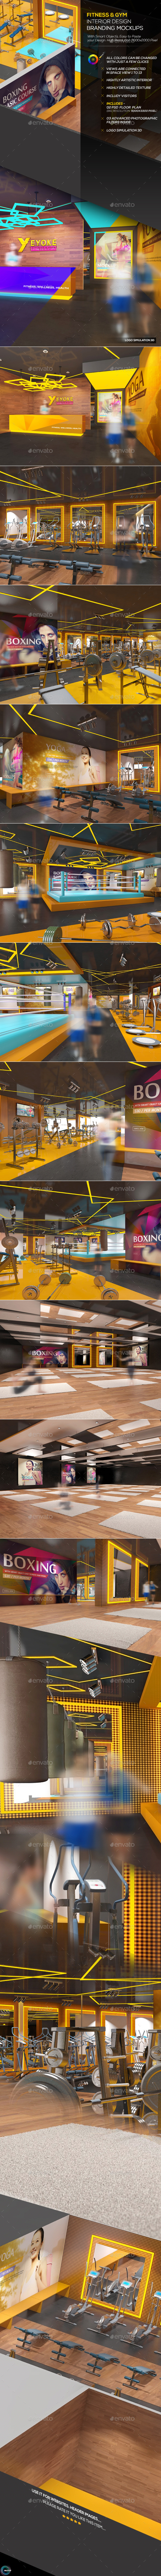 Fitness & Gym Interior Design  Branding Mockups - Logo Product Mock-Ups